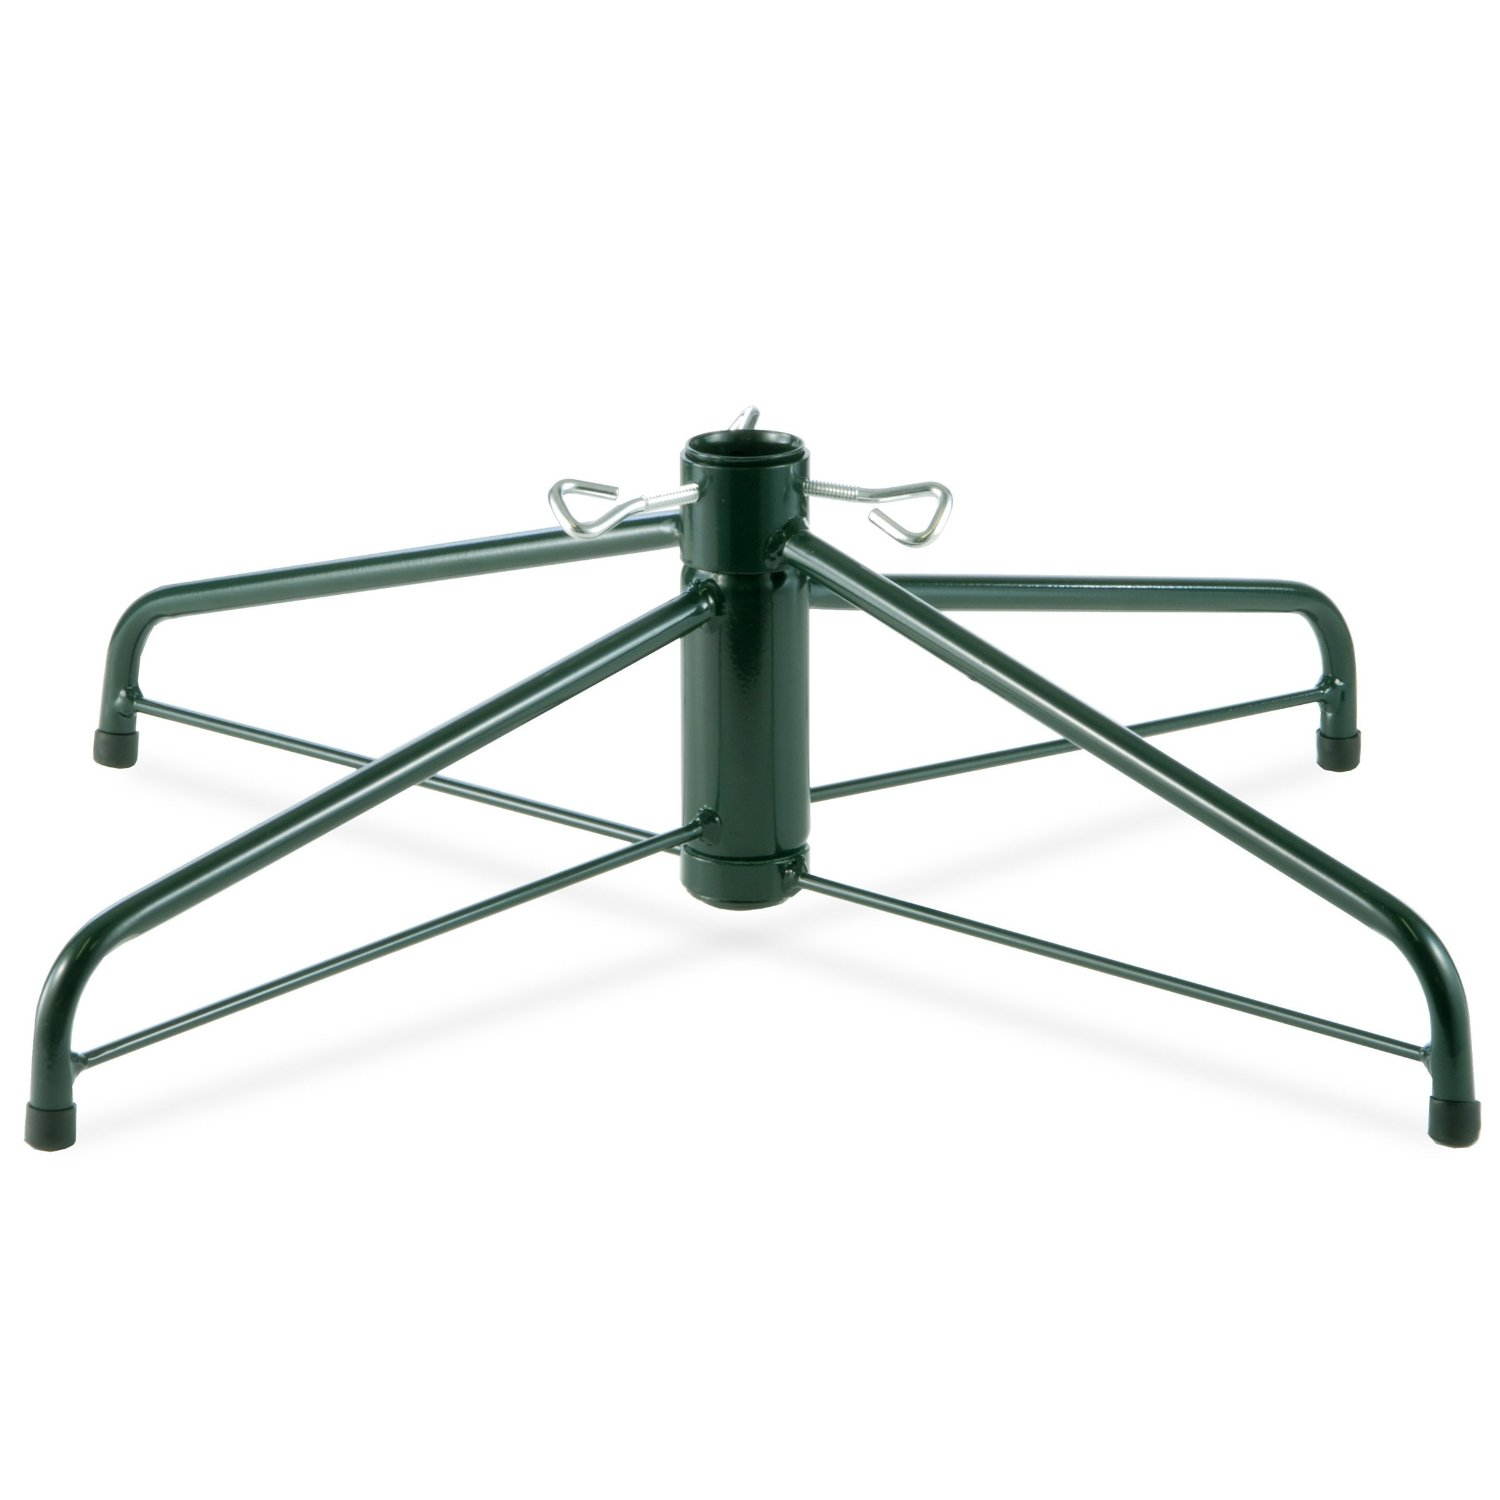 stunning firm metal christamd tree stands for real trees with four legs and strong center pole